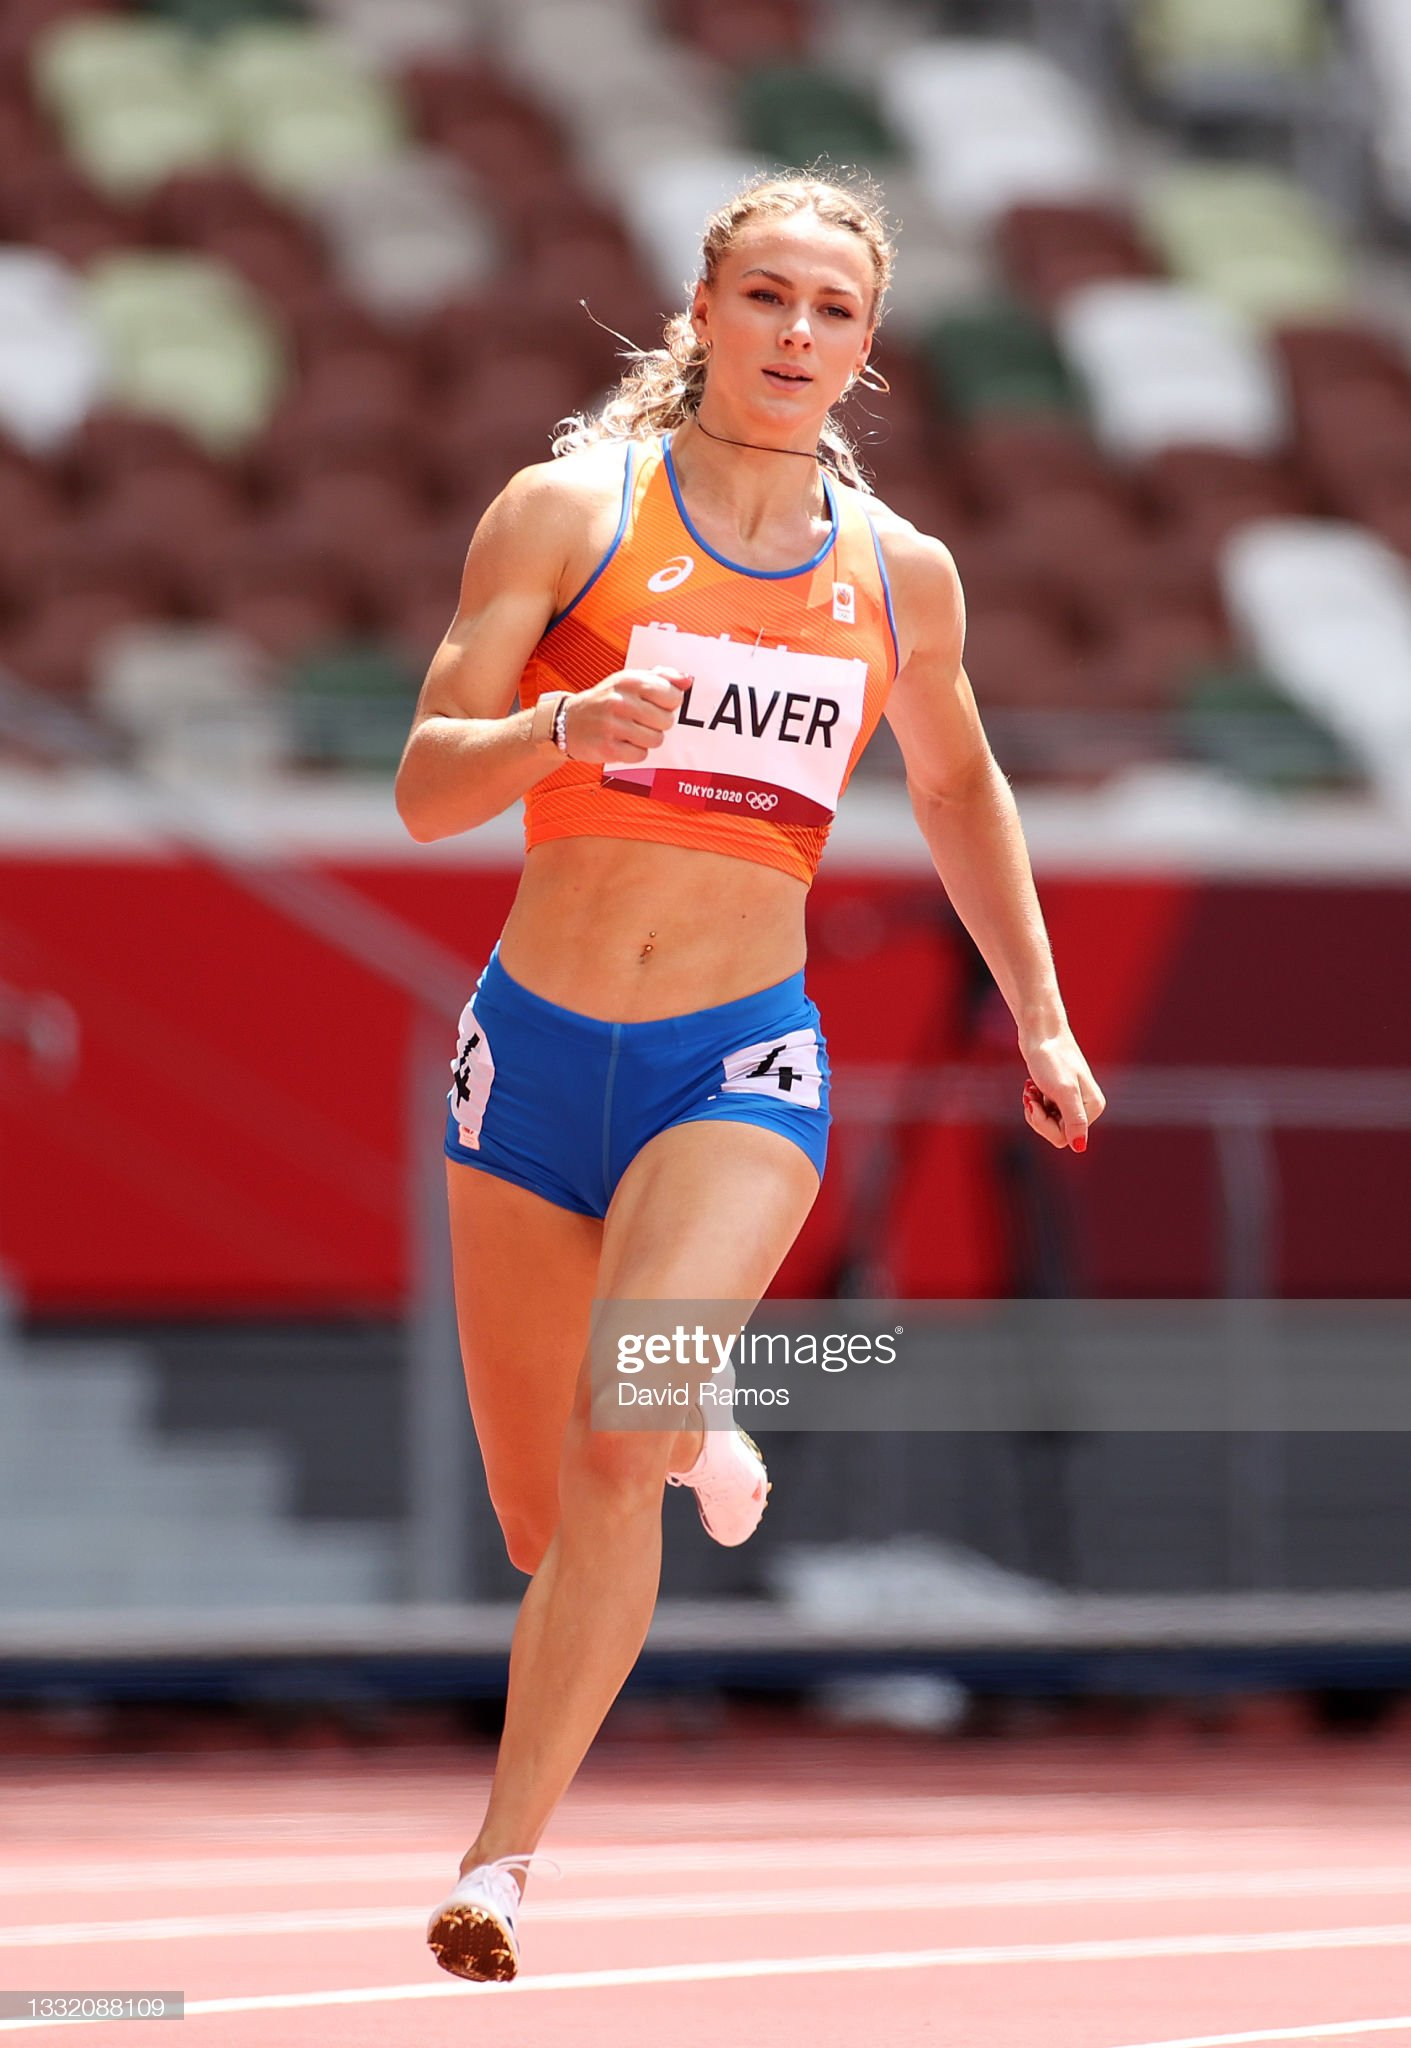 ¿Cuánto mide Lieke Klaver? - Altura - Real height Lieke-klaver-of-team-netherlands-competes-in-round-one-of-the-womens-picture-id1332088109?s=2048x2048